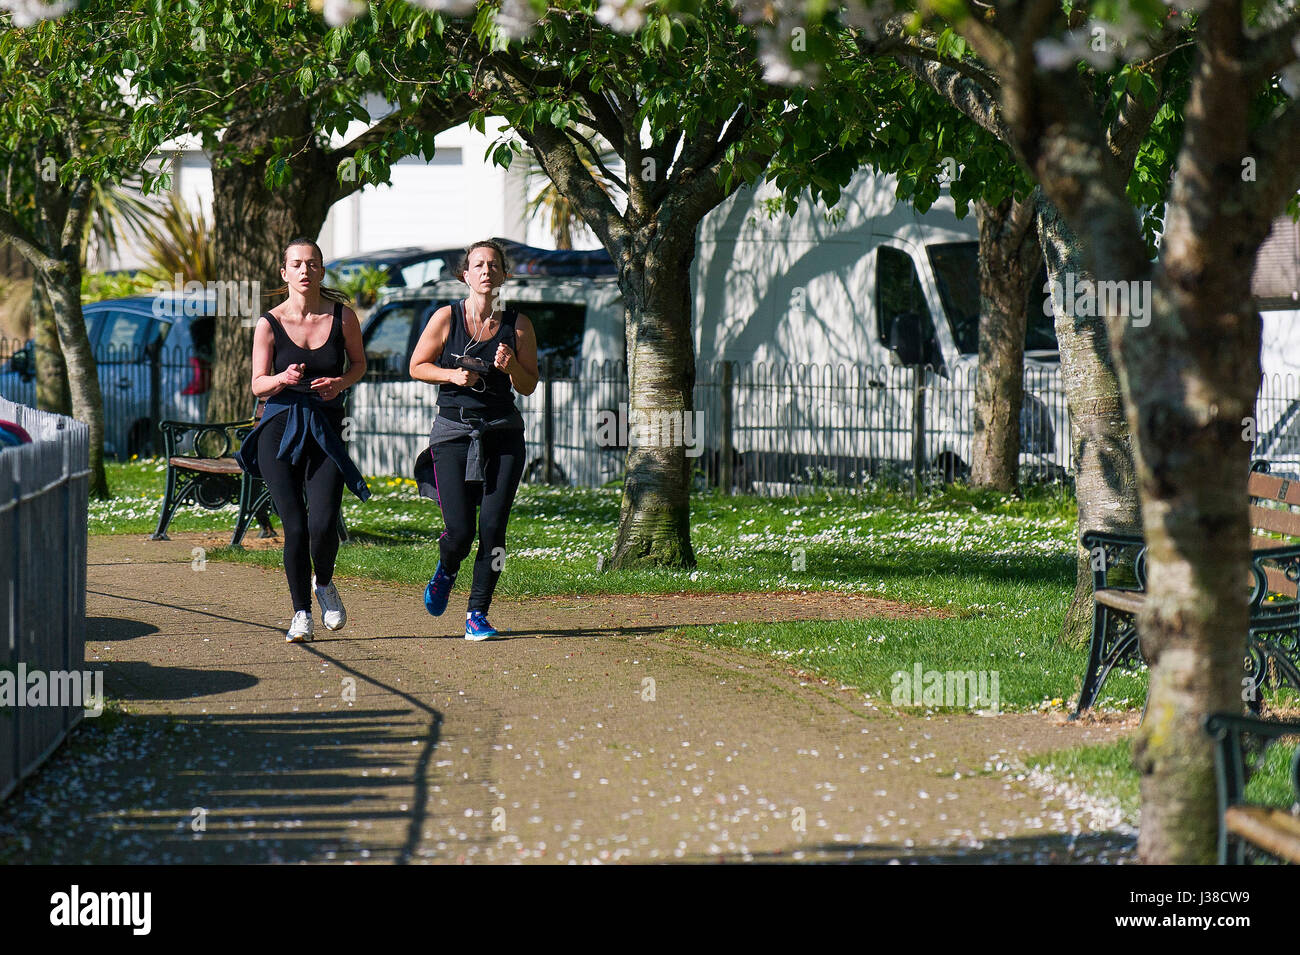 Two women jogging Keep fit regime Jogging Joggers Running Determined Exercising Healthy lifestyle Fitness Runners - Stock Image